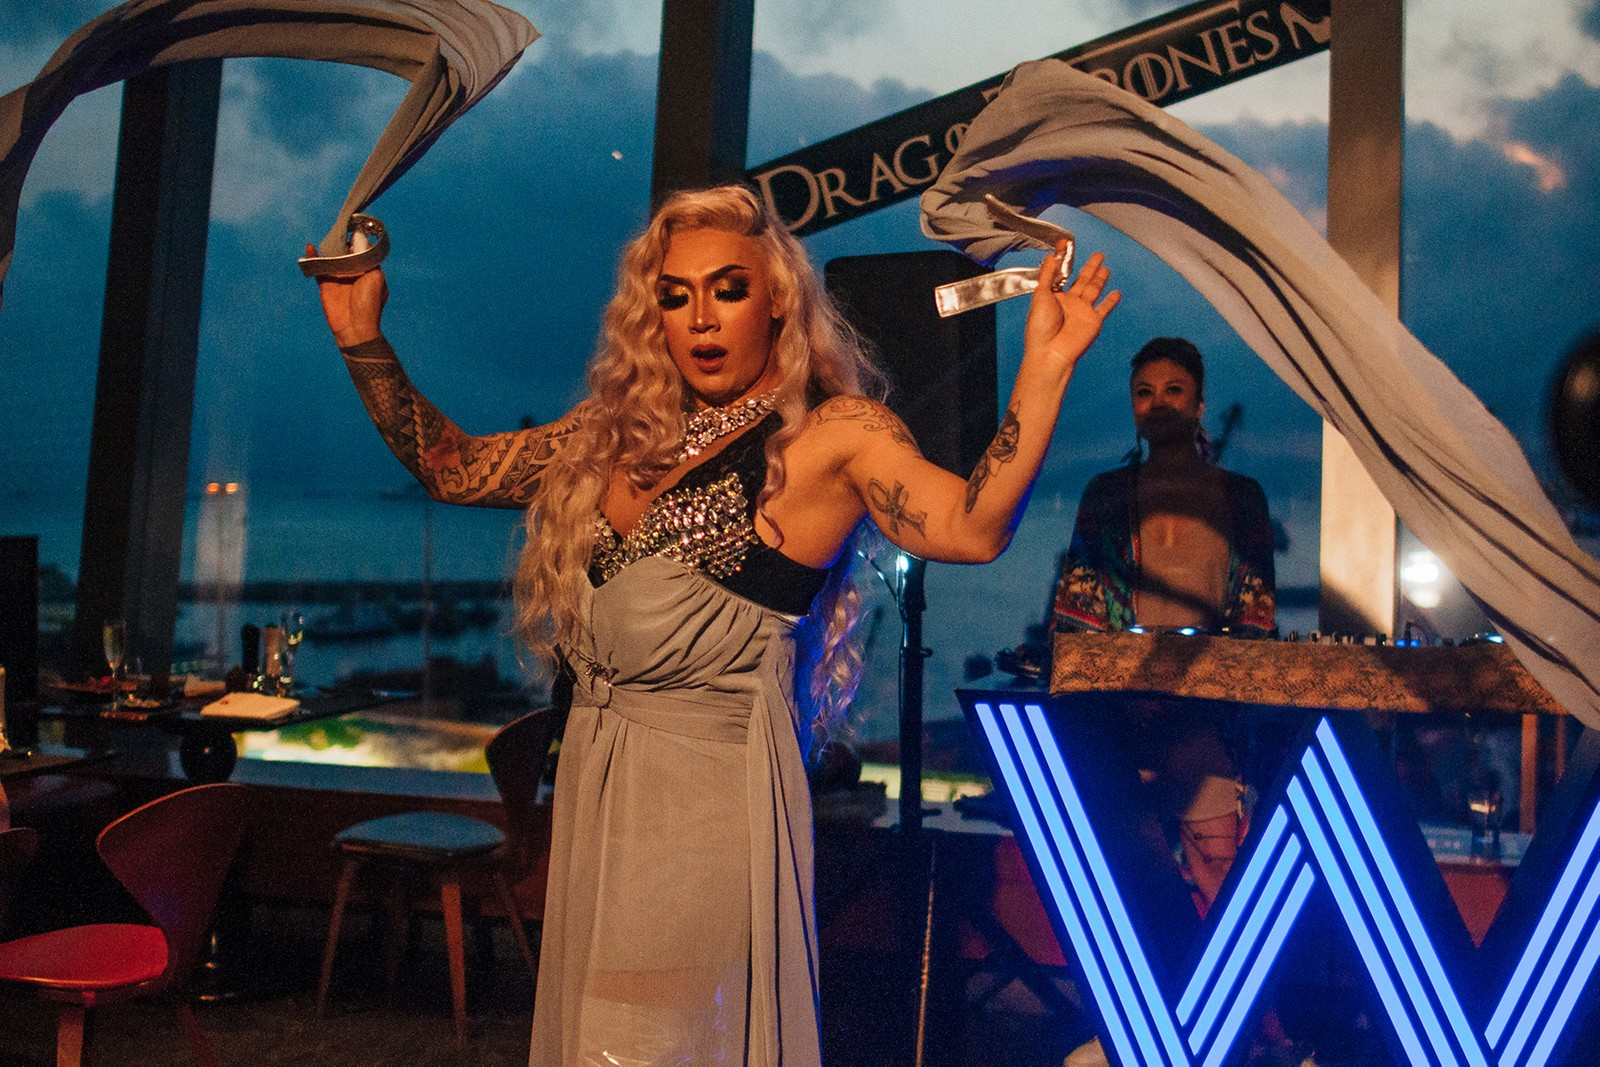 game of thrones drag queen brunch buffet w hotel hong kong all you can eat sansa stark daenerys targaryen arya cersei lannister food dessert seafood lgbtq pride month dj weekend party